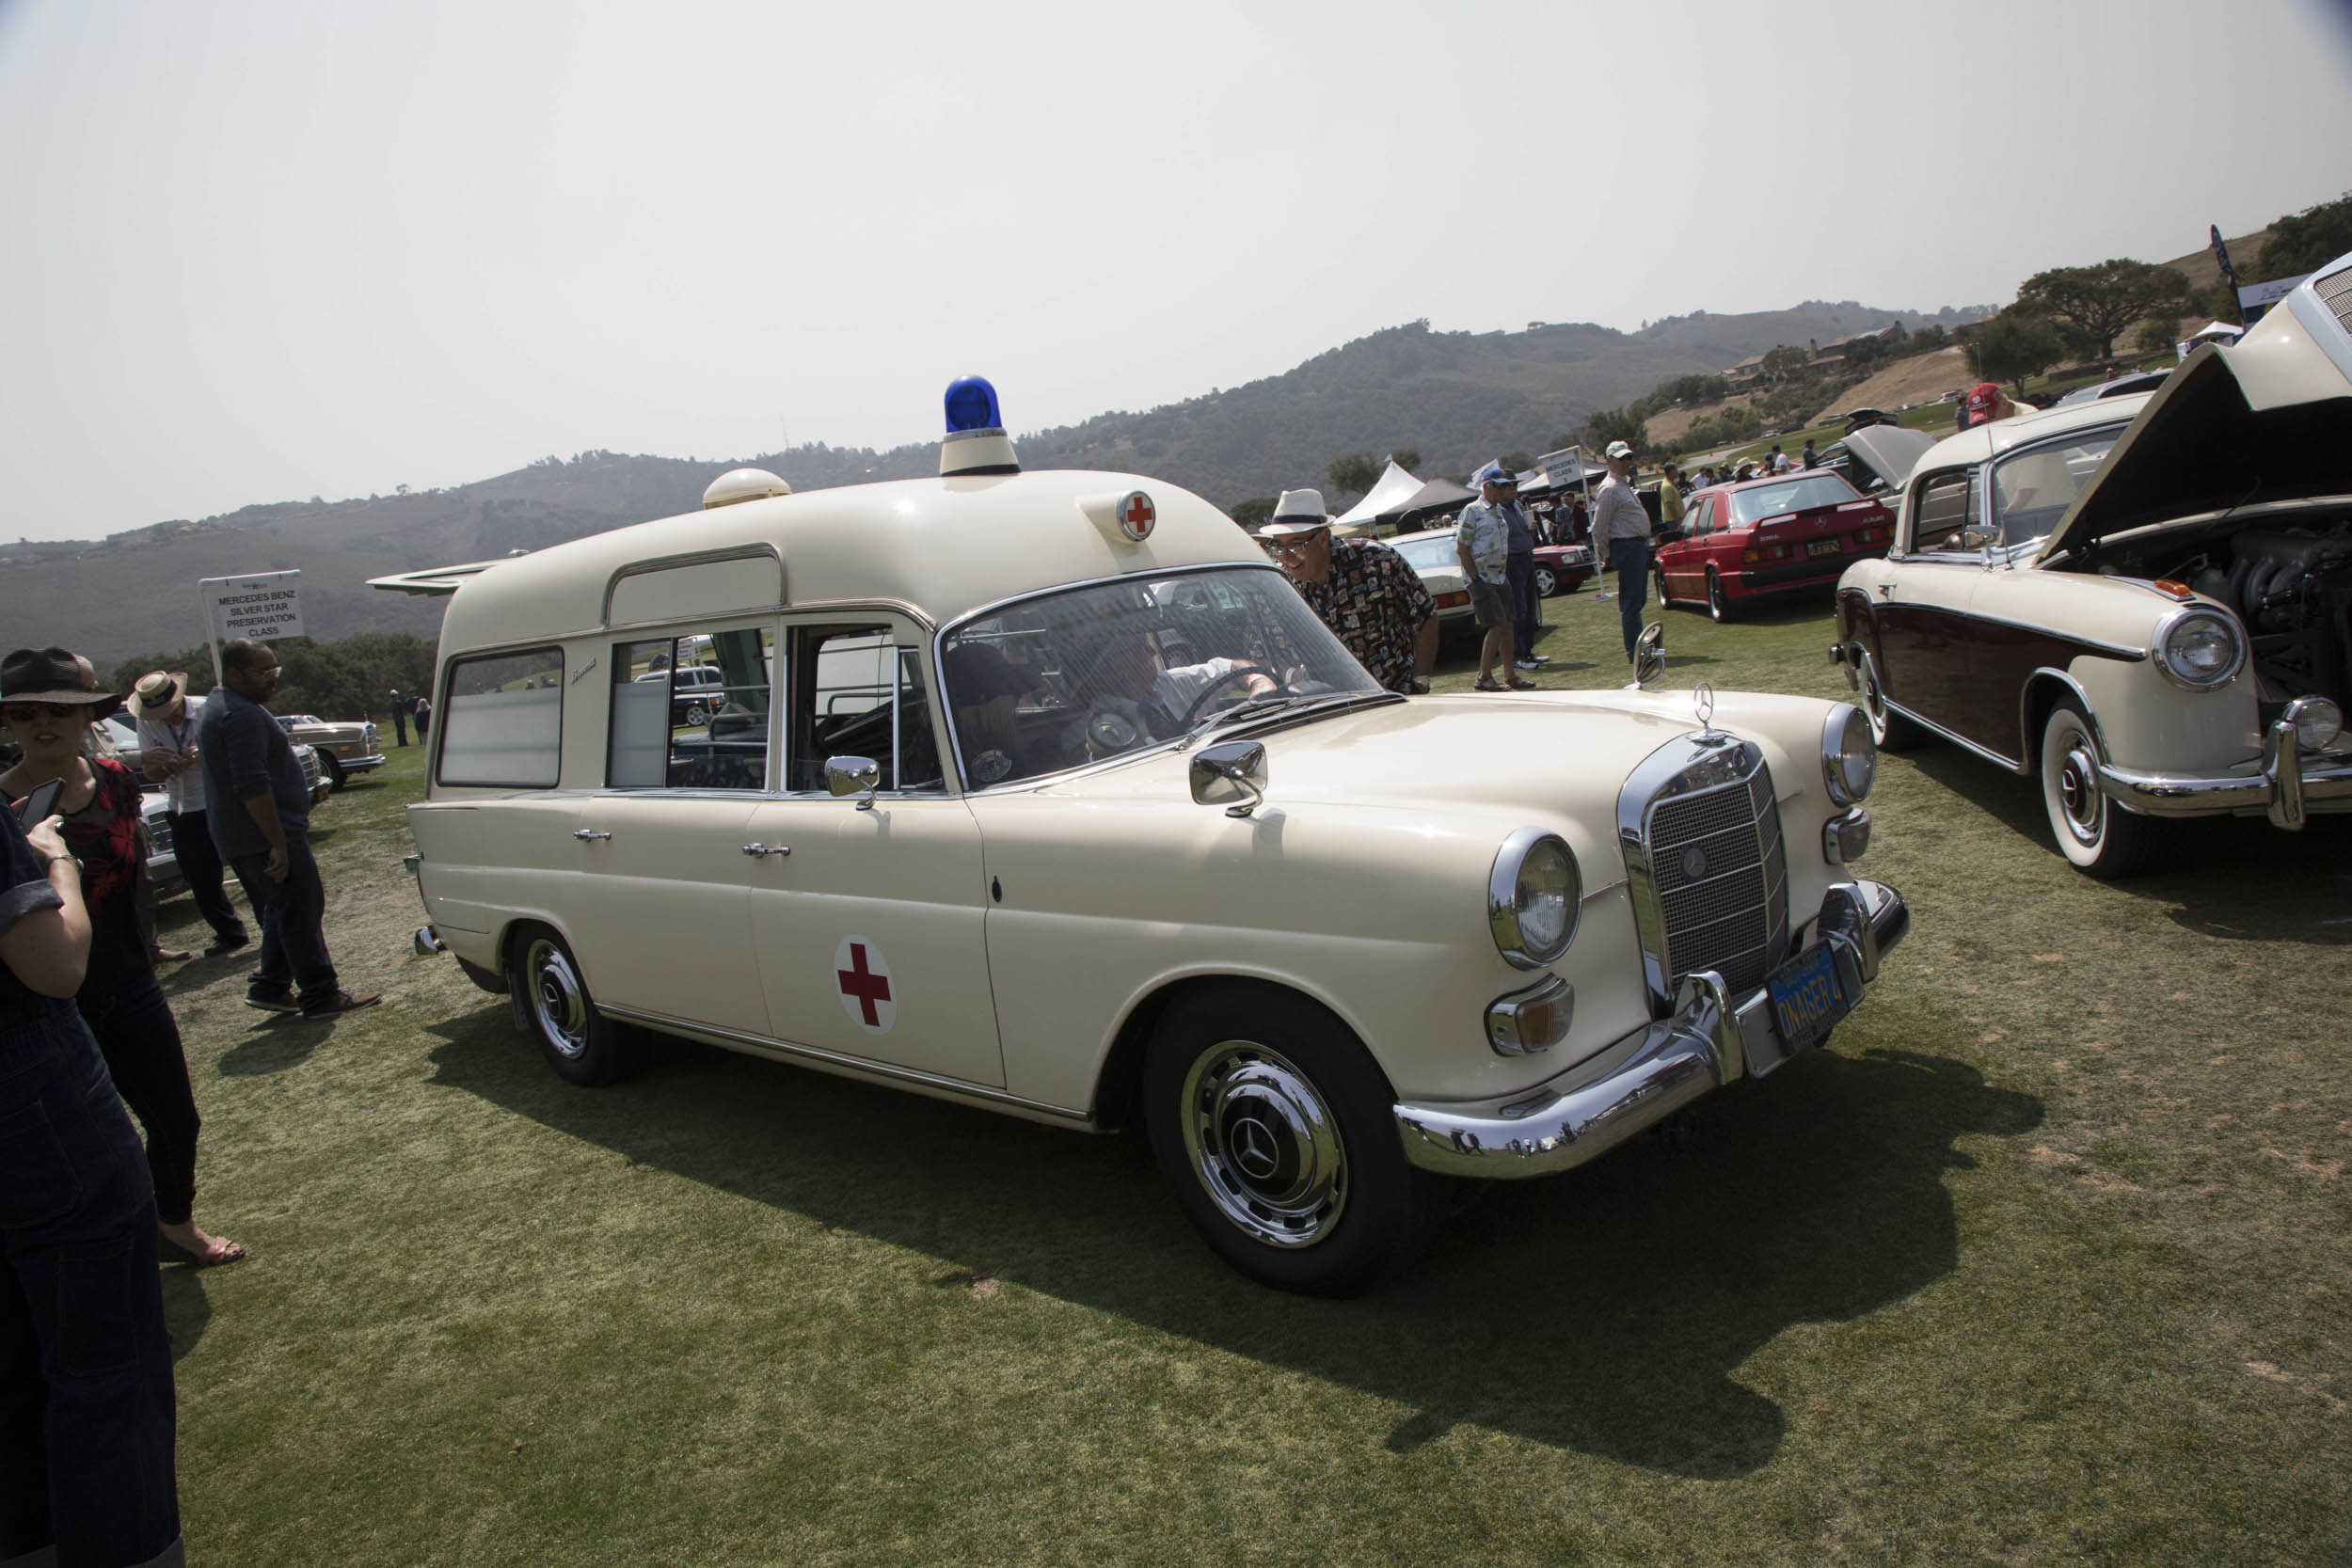 Less dignified, perhaps, was this Mercedes-Benz ambulance, which will likely never get within 1000 feet of a normal concours.